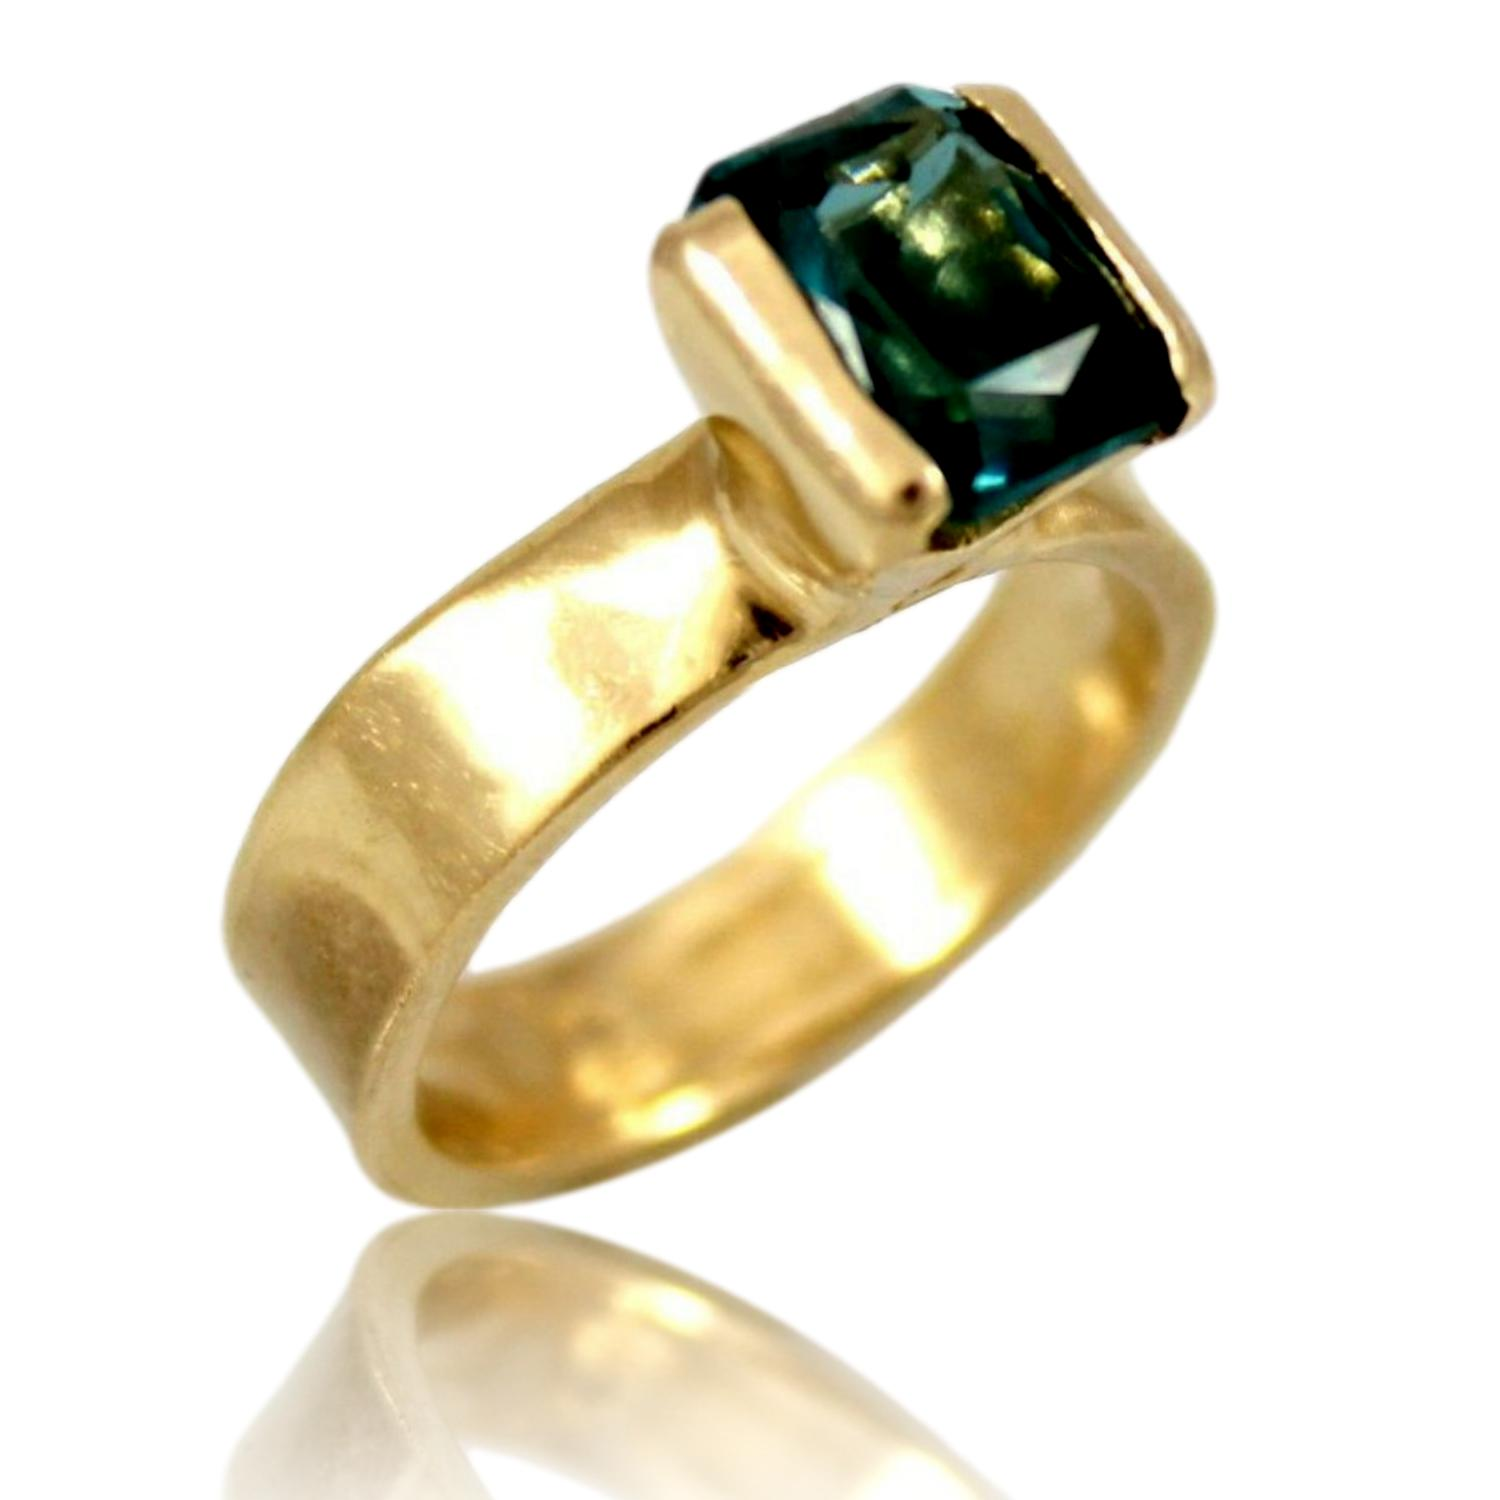 18K-Gold-2-carat-Lab-Created-Blue-Spinel-Ring_73295A.jpg